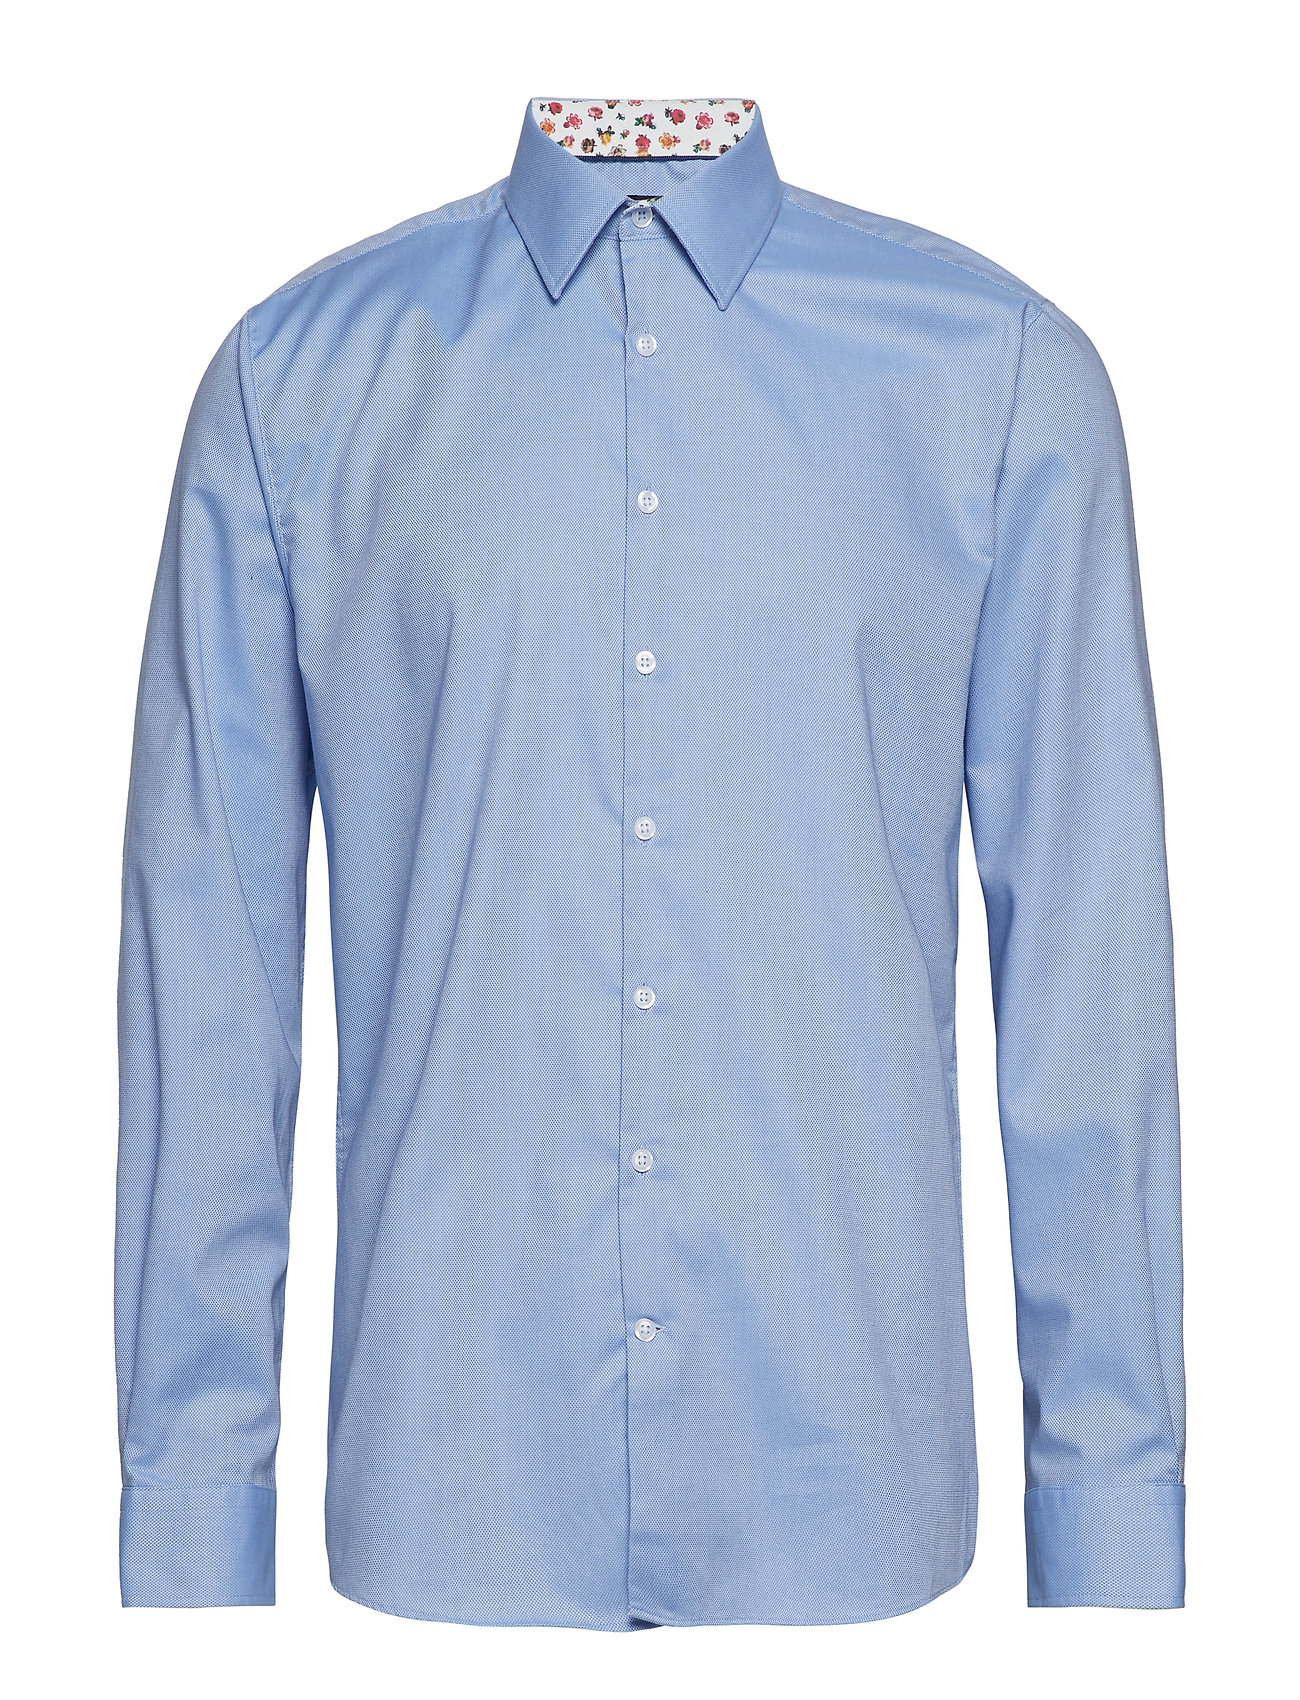 Lindbergh Structure shirt w contrast L/S - LIGHT BLUE